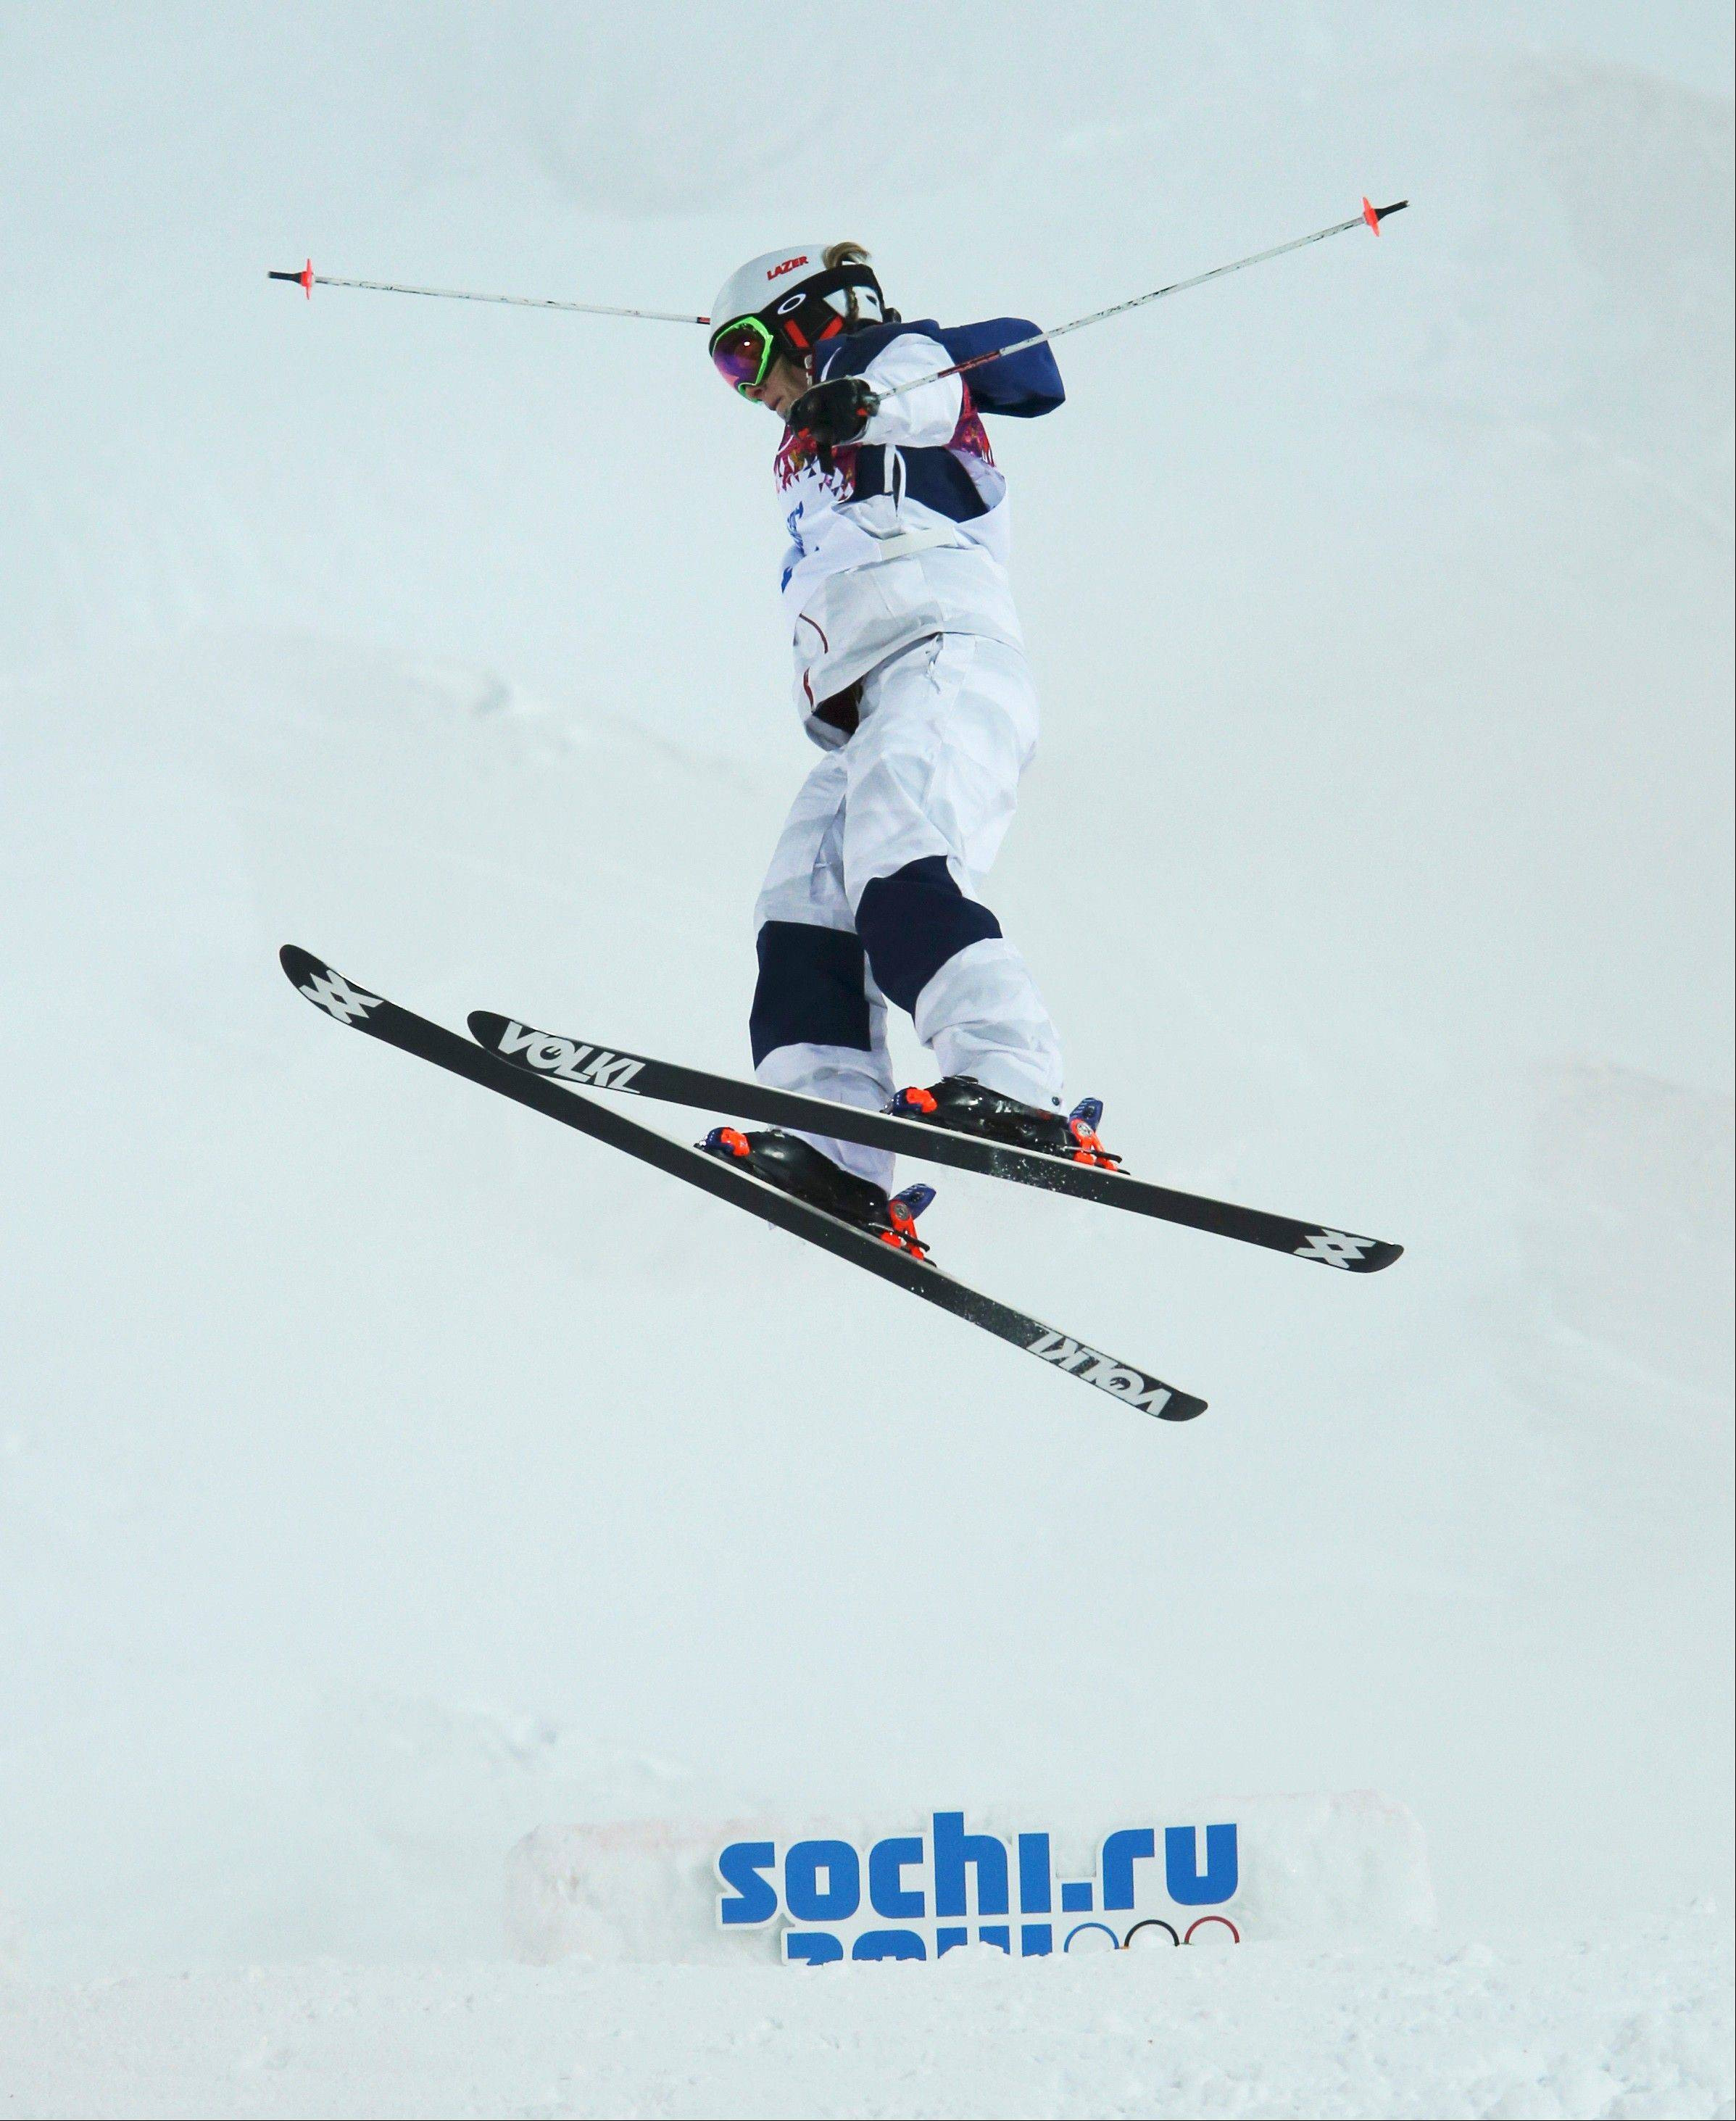 United States' Hannah Kearney jumps during qualifying in the women's moguls at the Rosa Kutor Exreme Park ahead of the 2014 Winter Olympics, Thursday, Feb. 6, 2014, in Krasnaya Polyana, Russia.